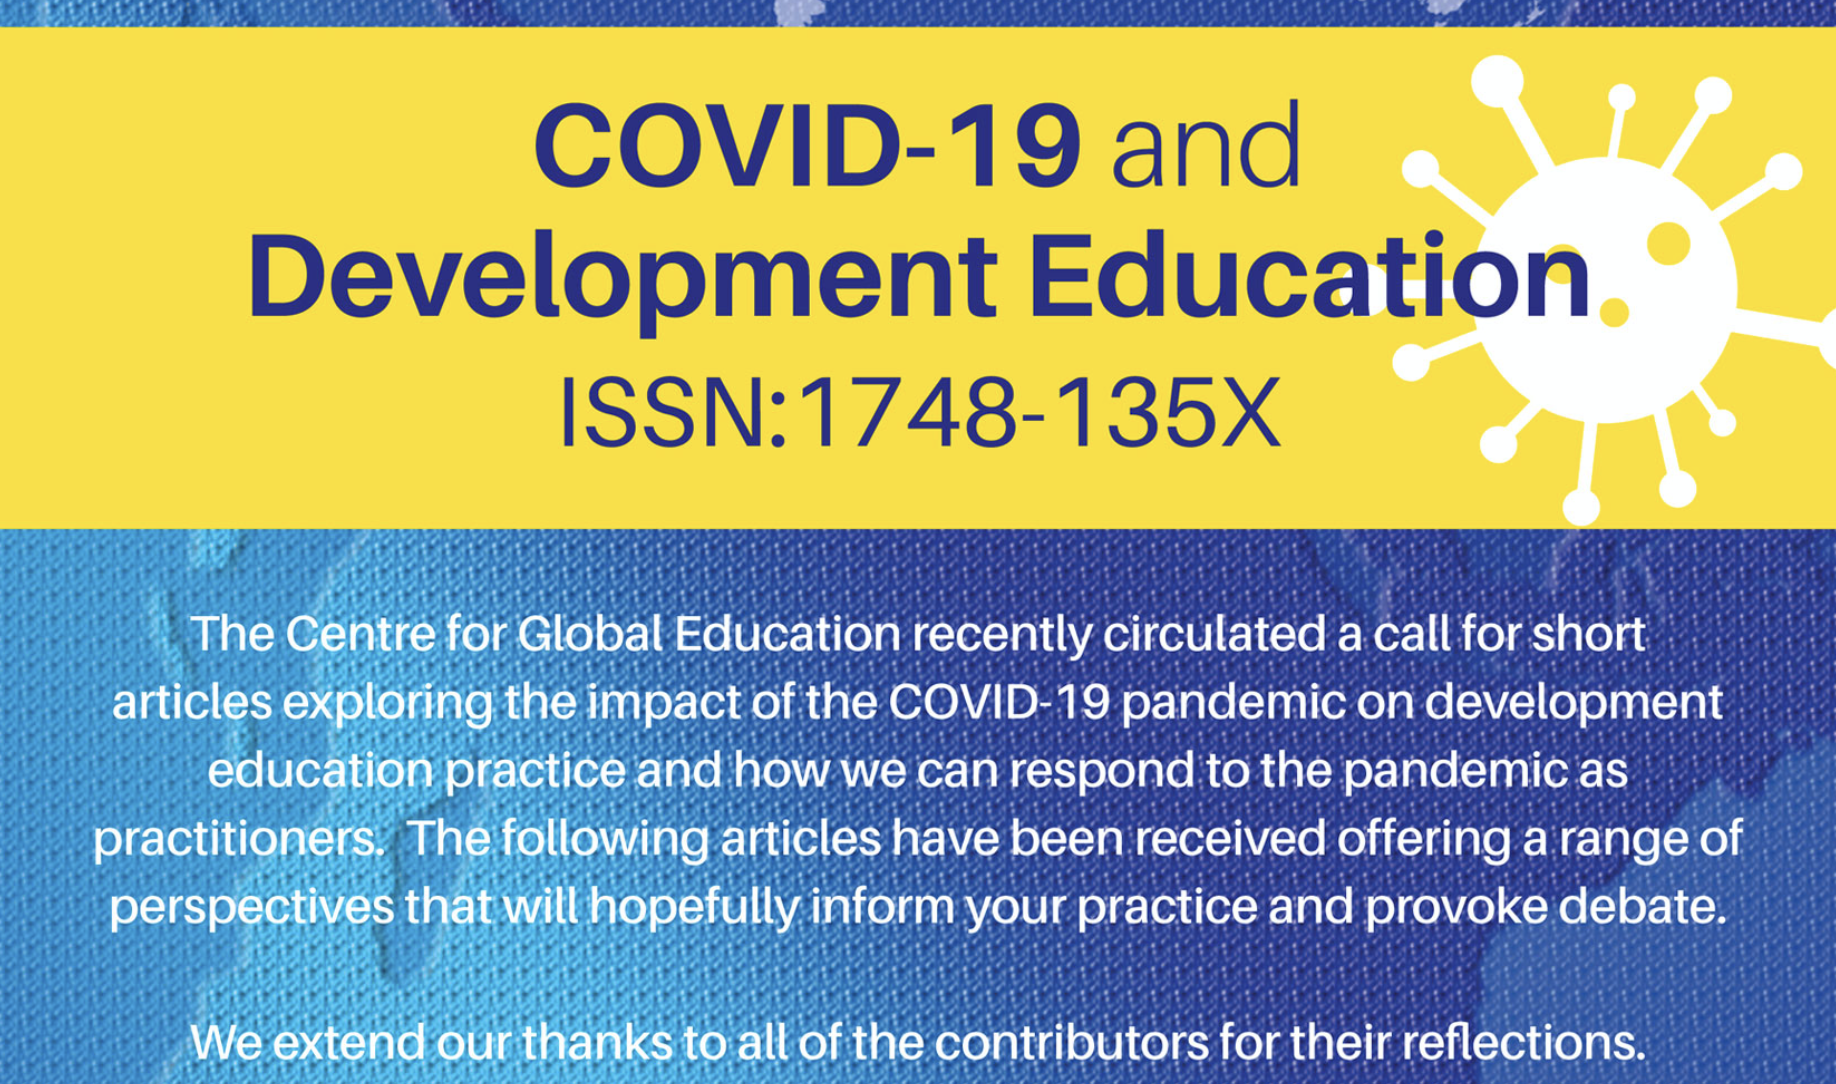 COVID-19 and Development Education